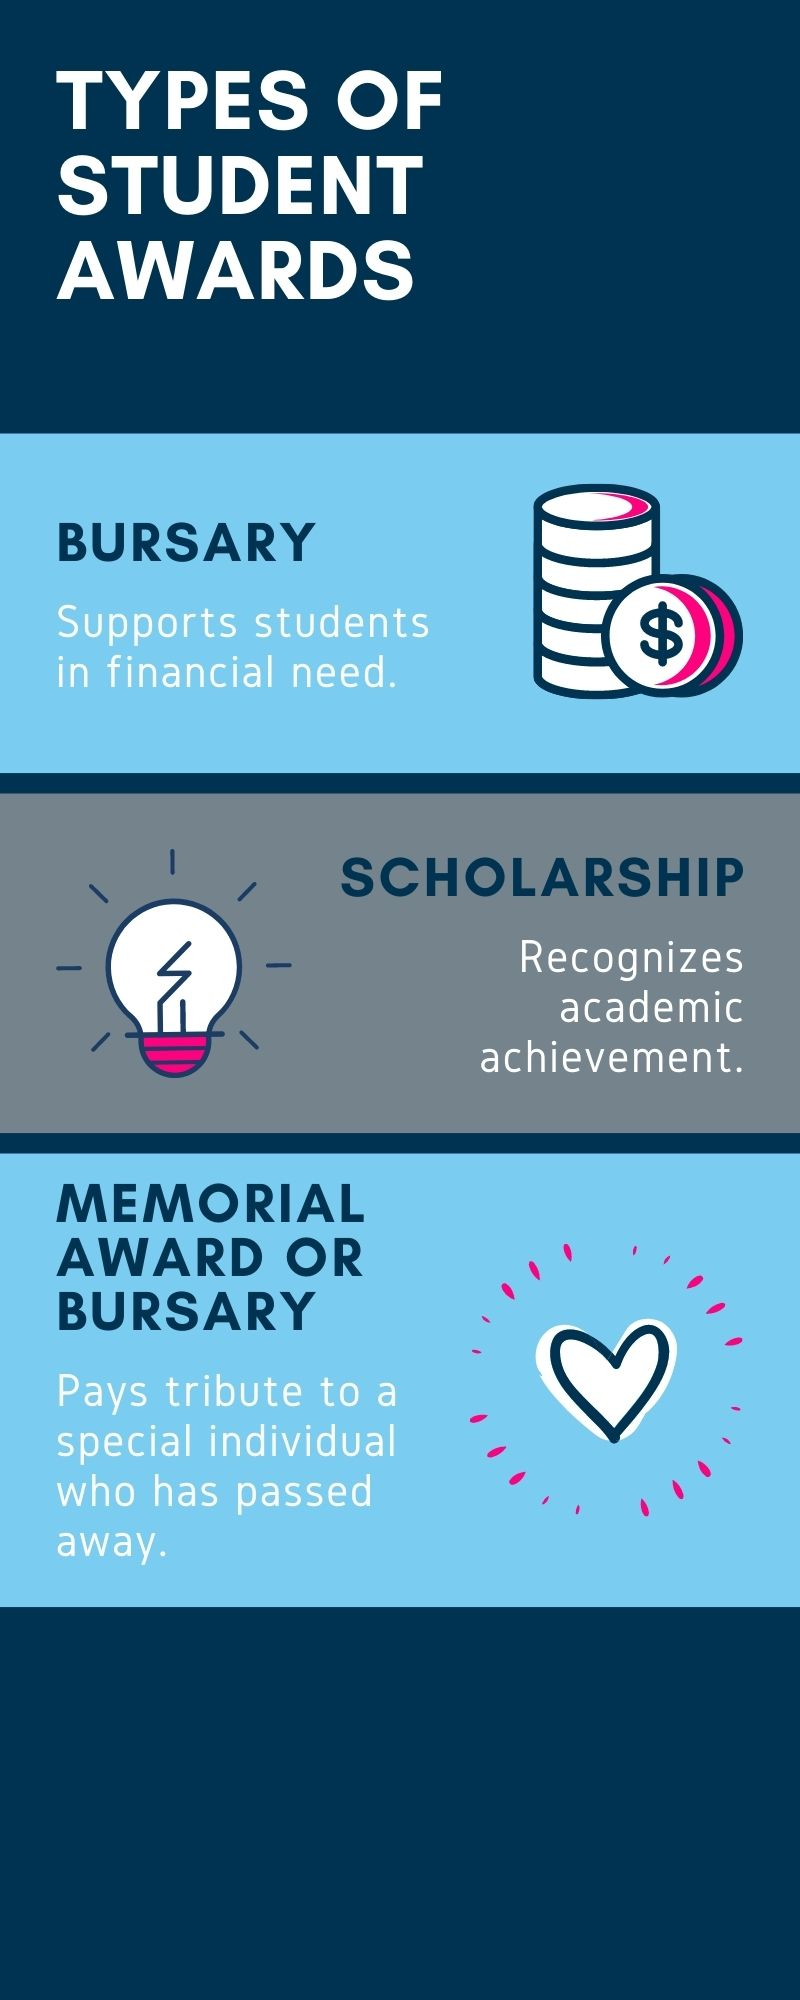 Types of Student Awards